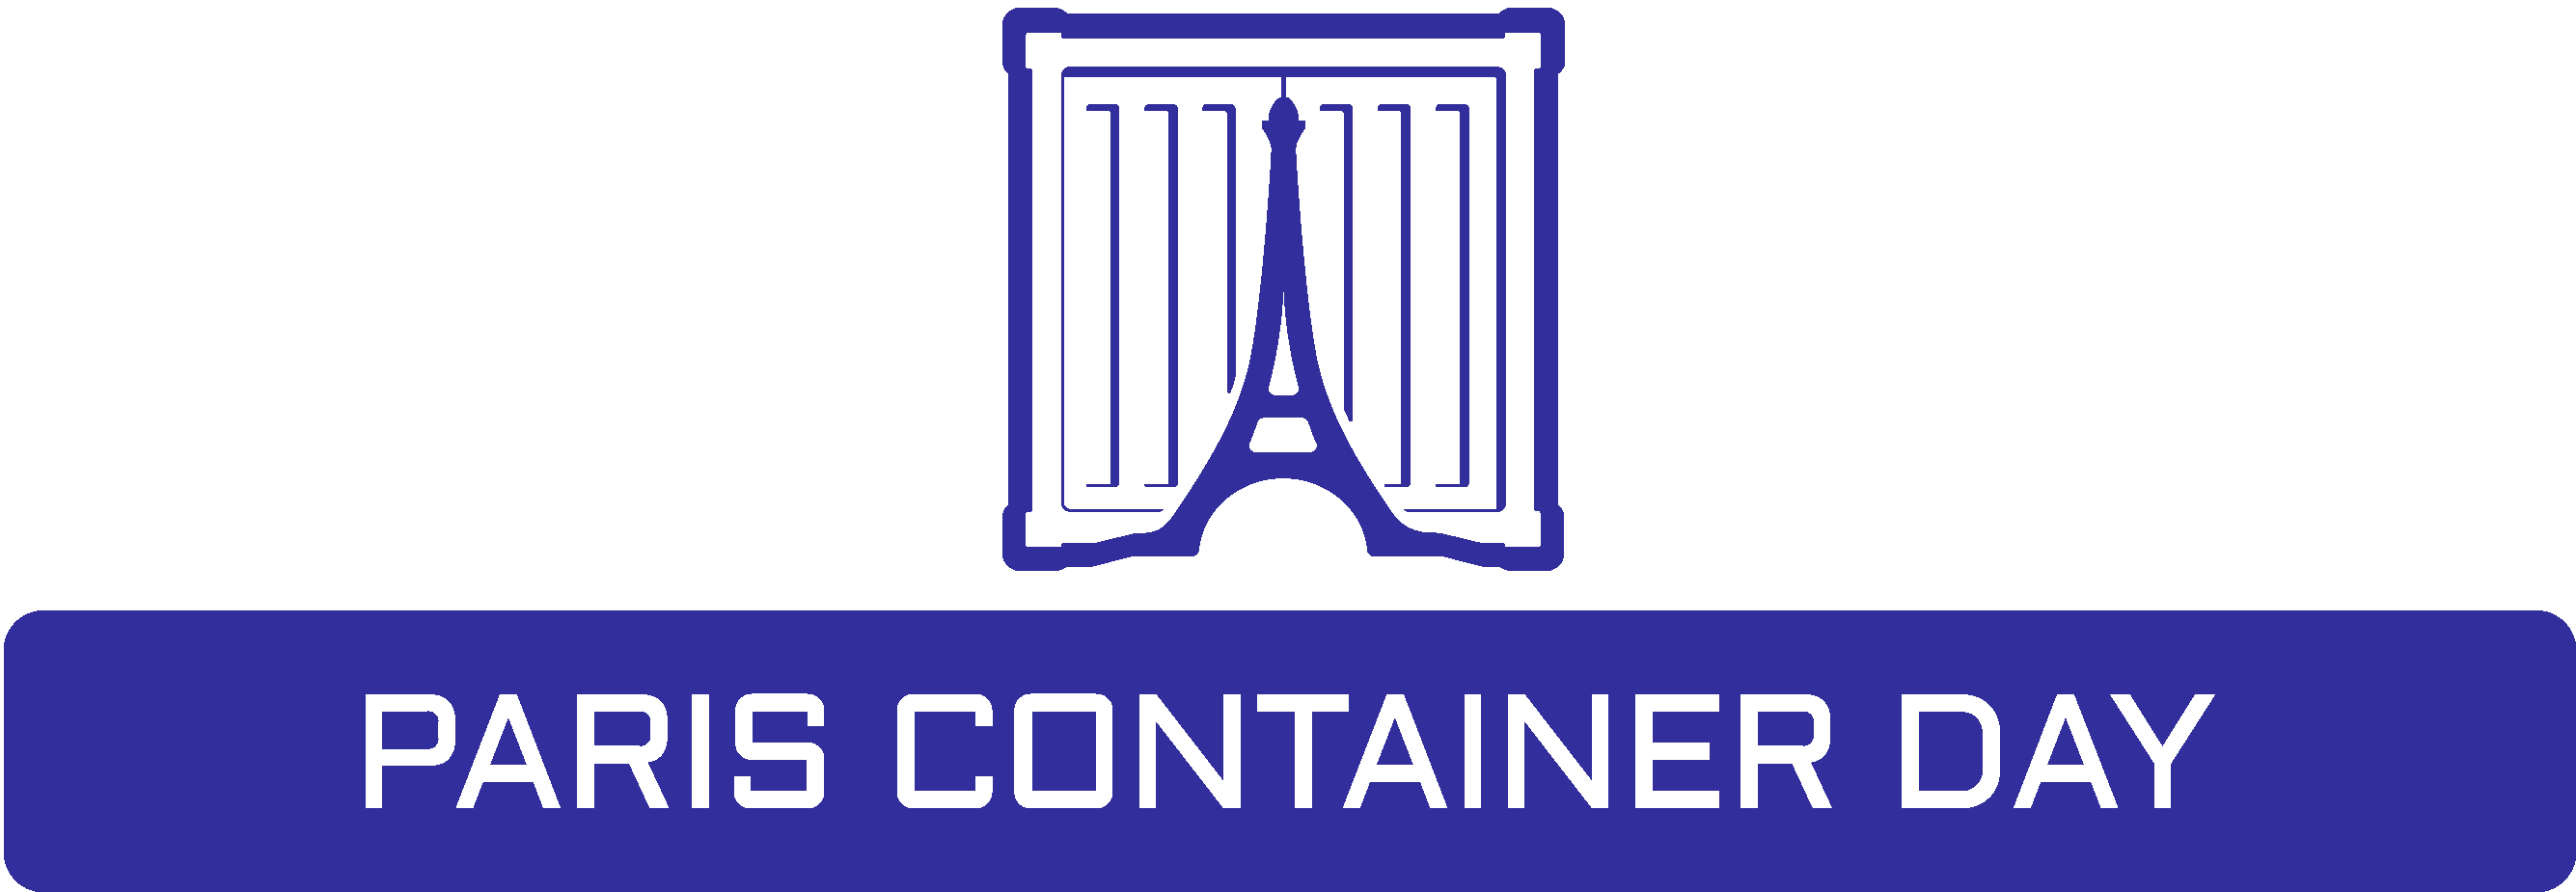 ParisContainerDay